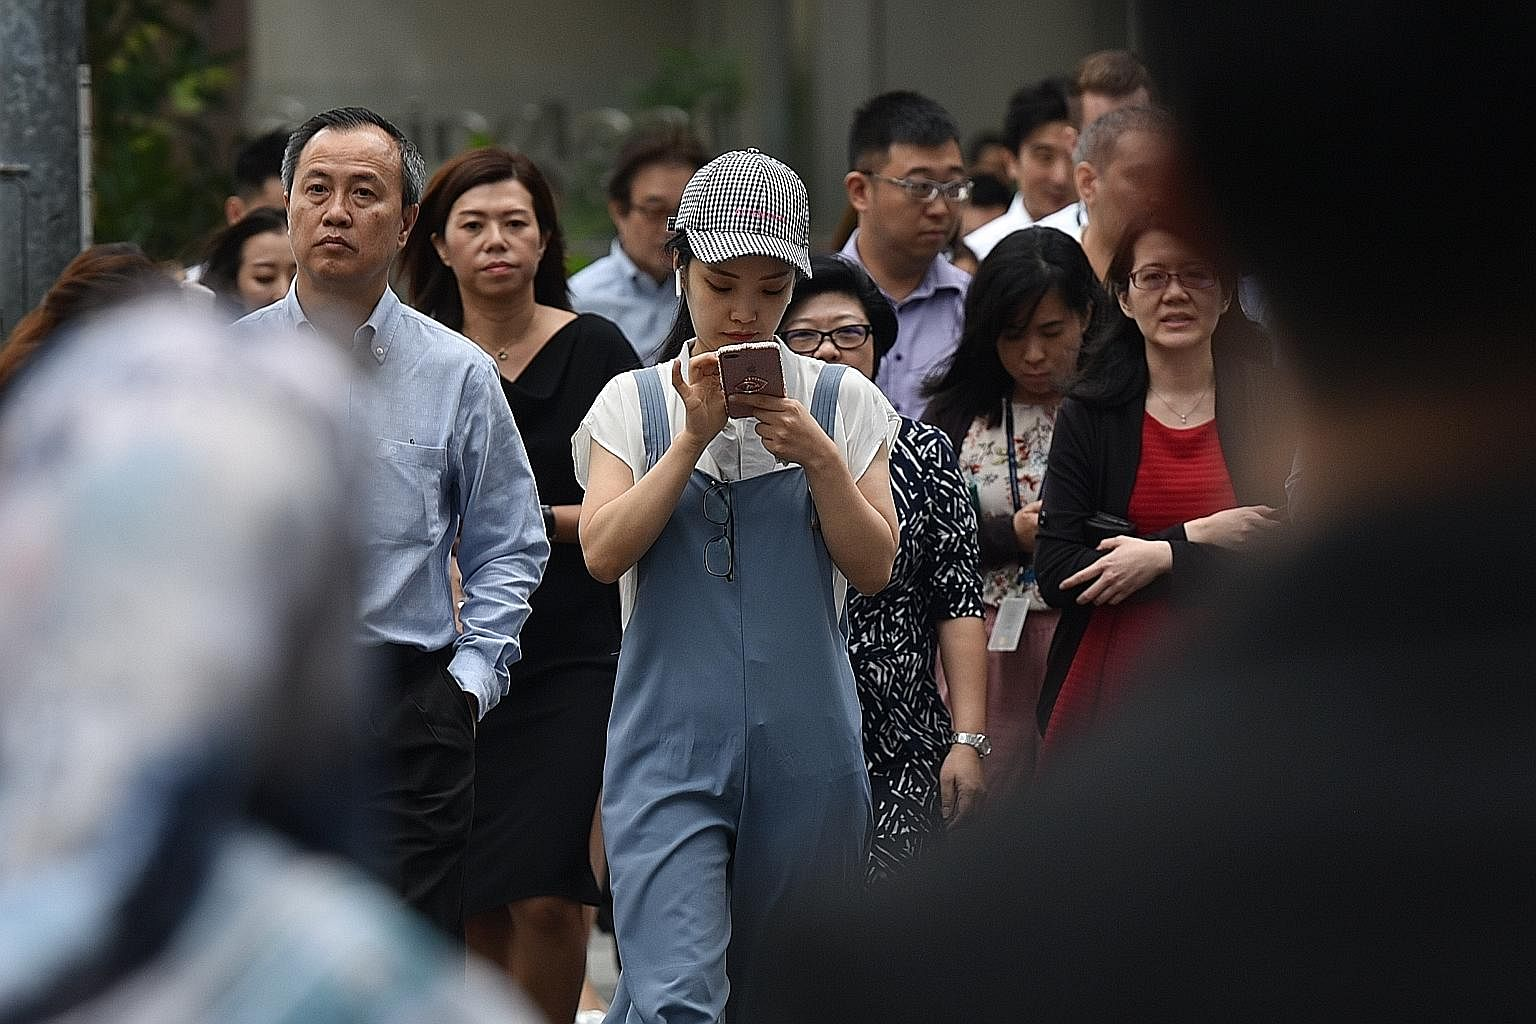 Job seekers are now required to be adaptable, able to work in multicultural teams and capable of communicating effectively - skills which will enable them to not just land a job in the post-pandemic world, but also thrive in it. ST FILE PHOTO